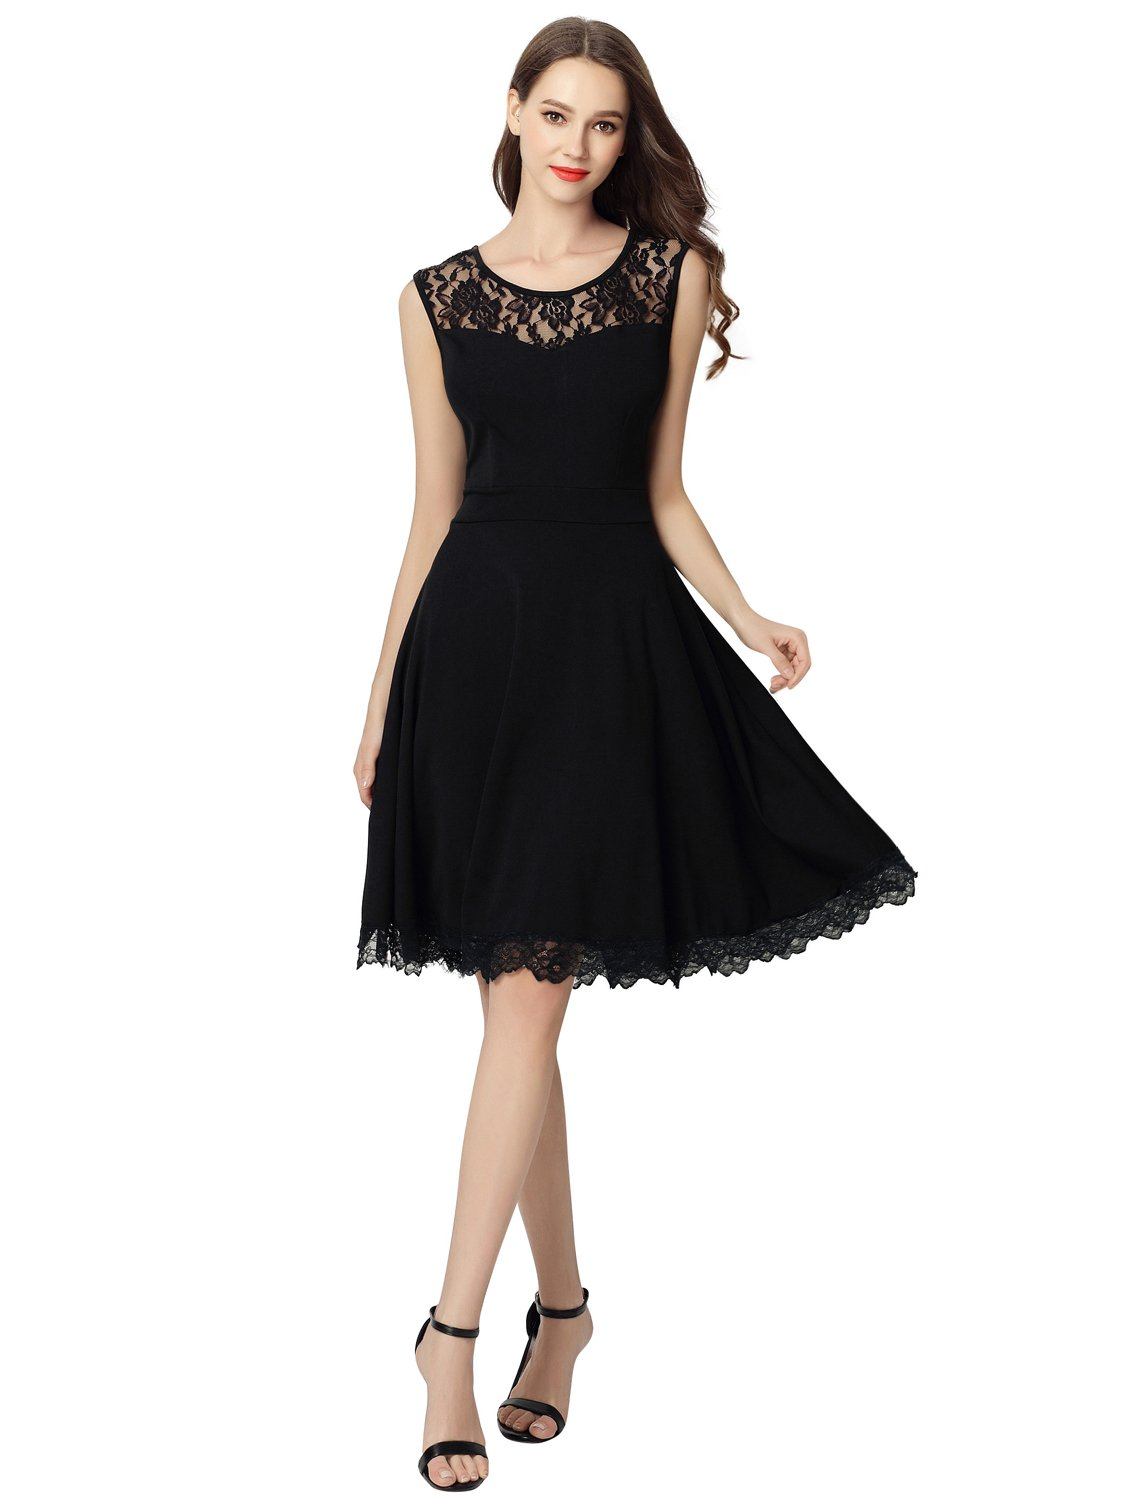 Dresms Women Sleeveless Lace Floral Elegant Cocktail Dress Crew Neck Knee Length (Black, Small) by Dresms (Image #4)